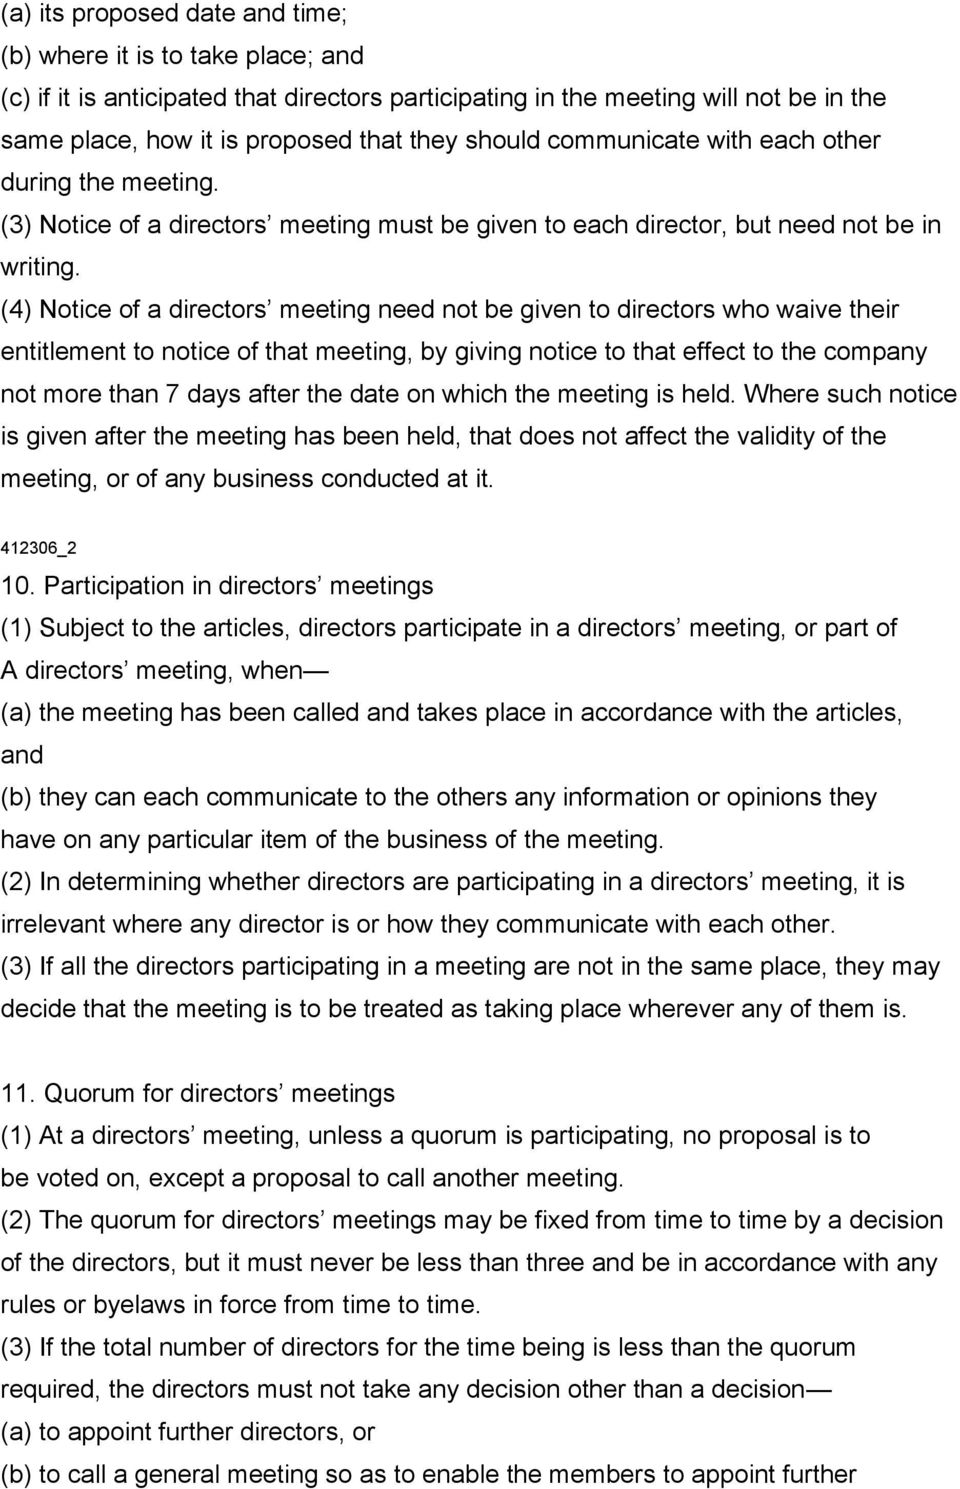 (4) Notice of a directors meeting need not be given to directors who waive their entitlement to notice of that meeting, by giving notice to that effect to the company not more than 7 days after the